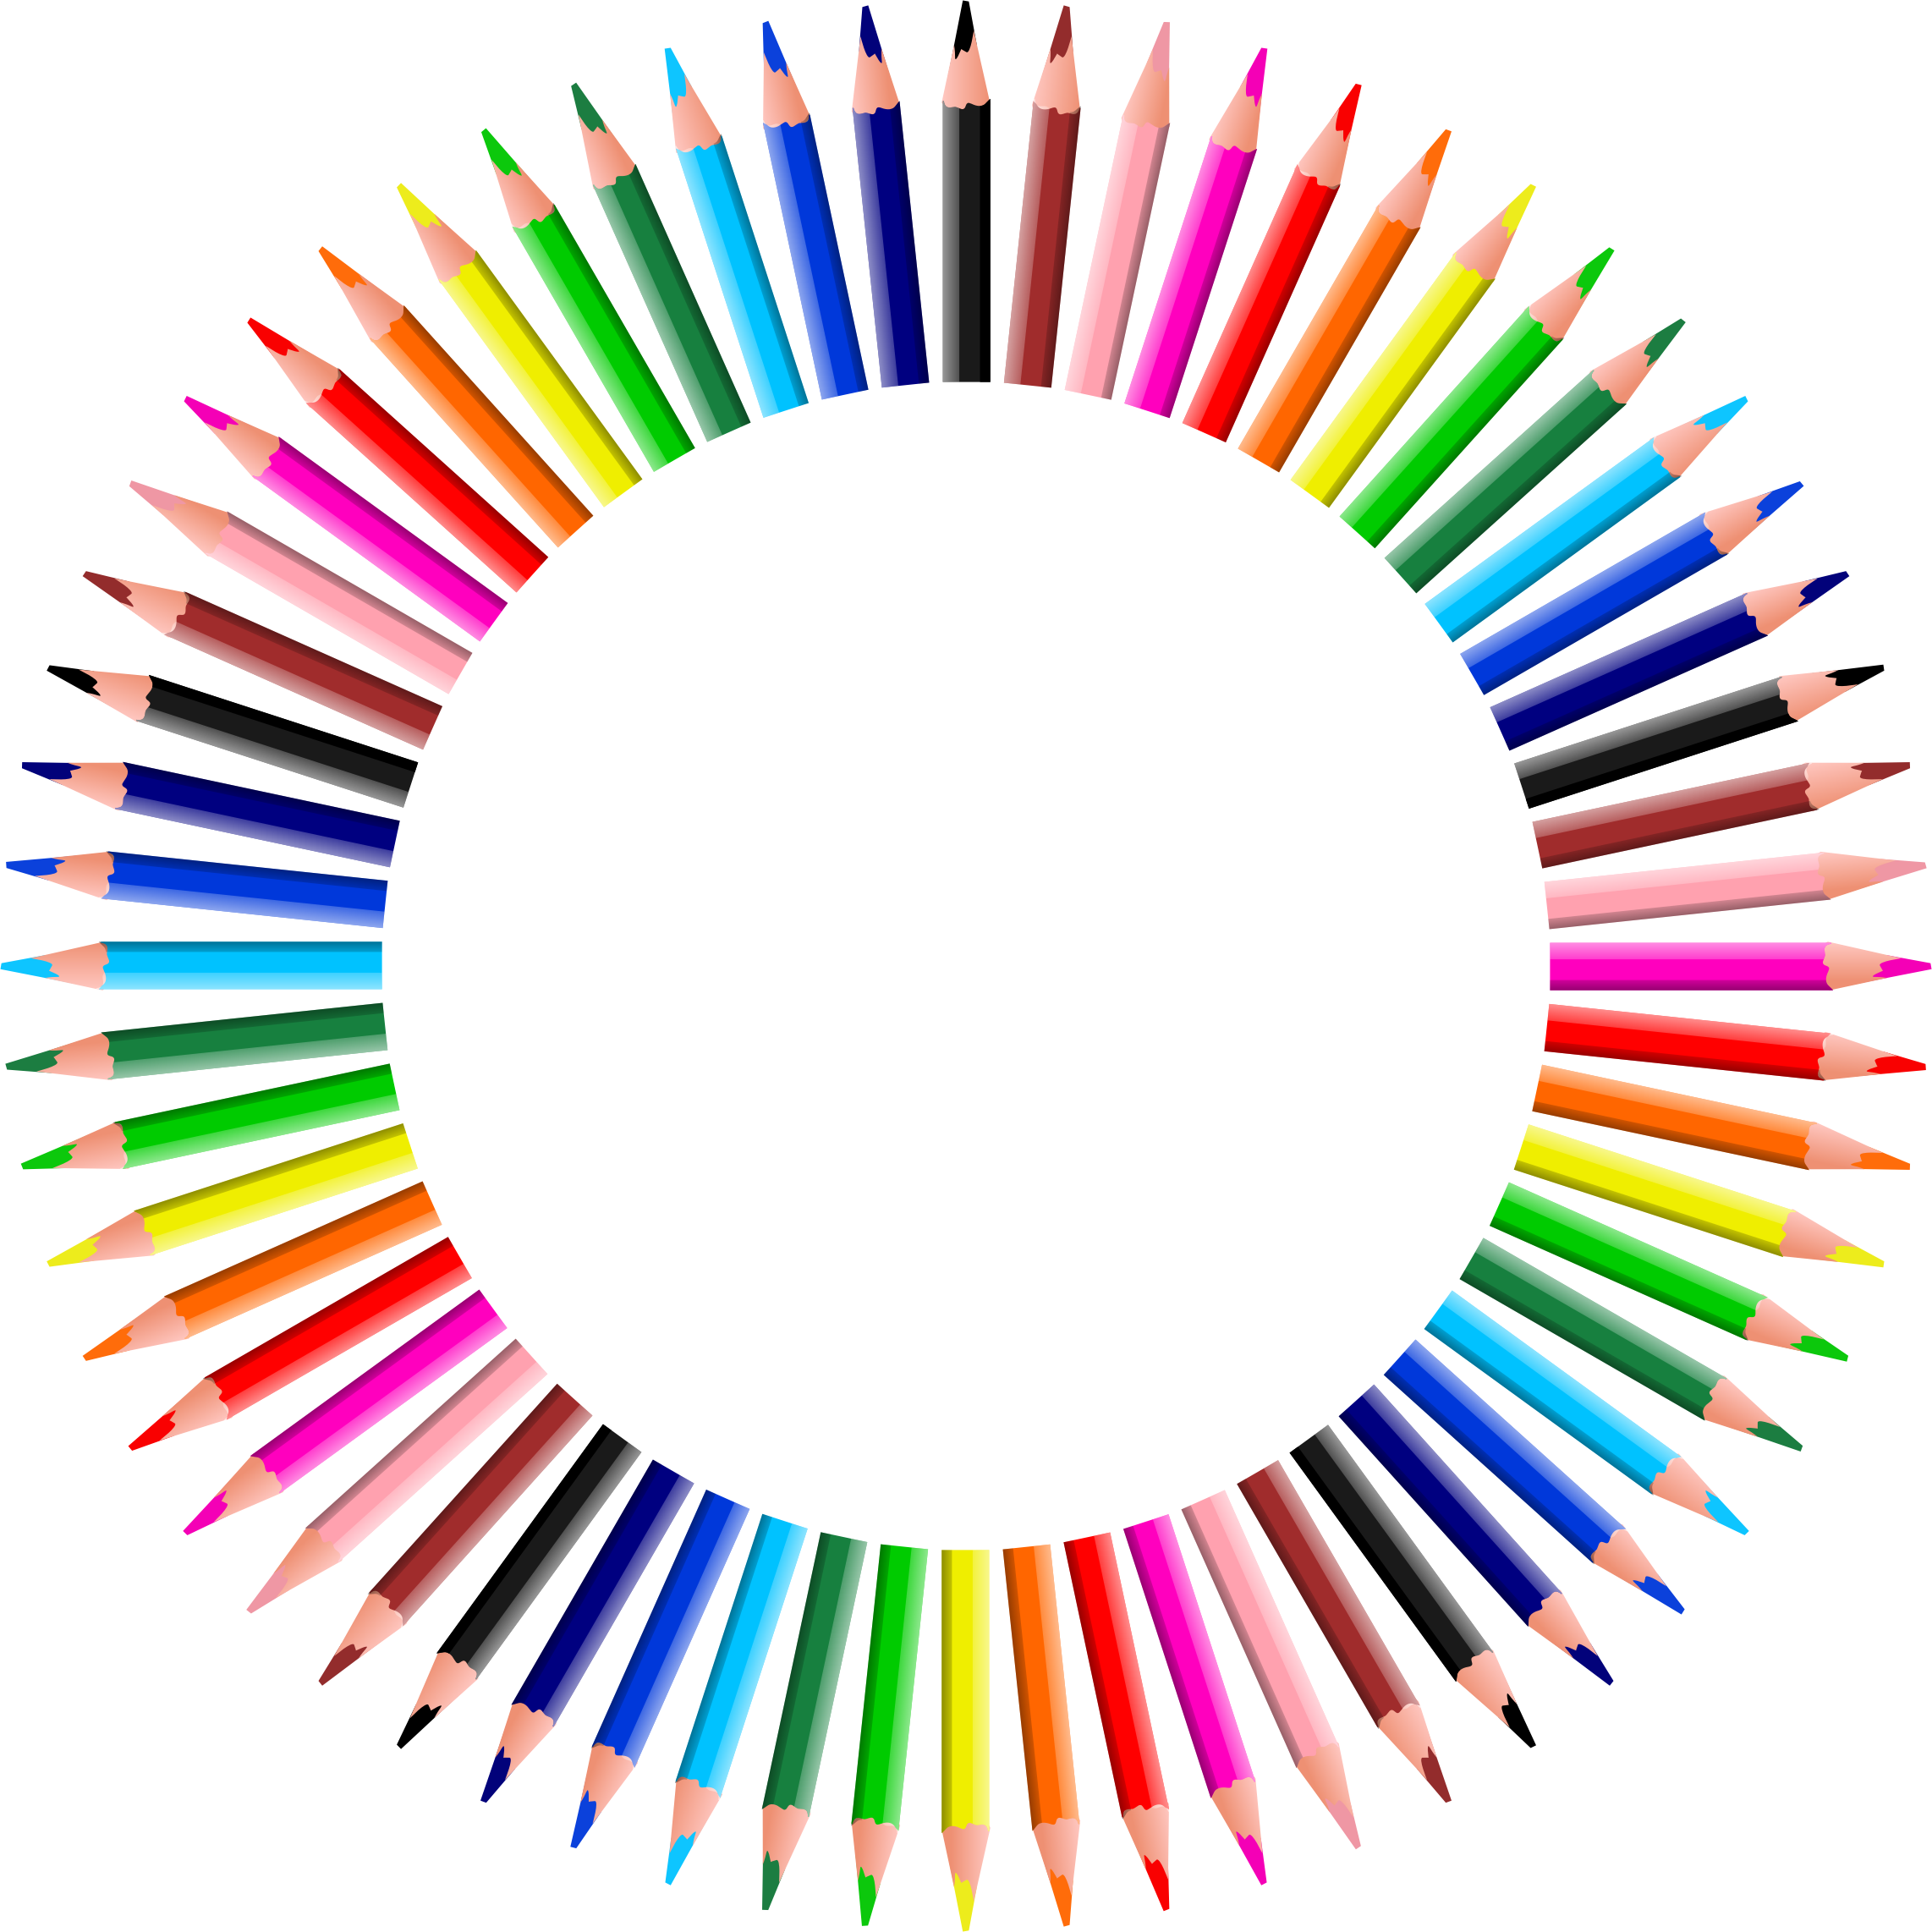 Colorful Pencils Frame 4 by GDJ